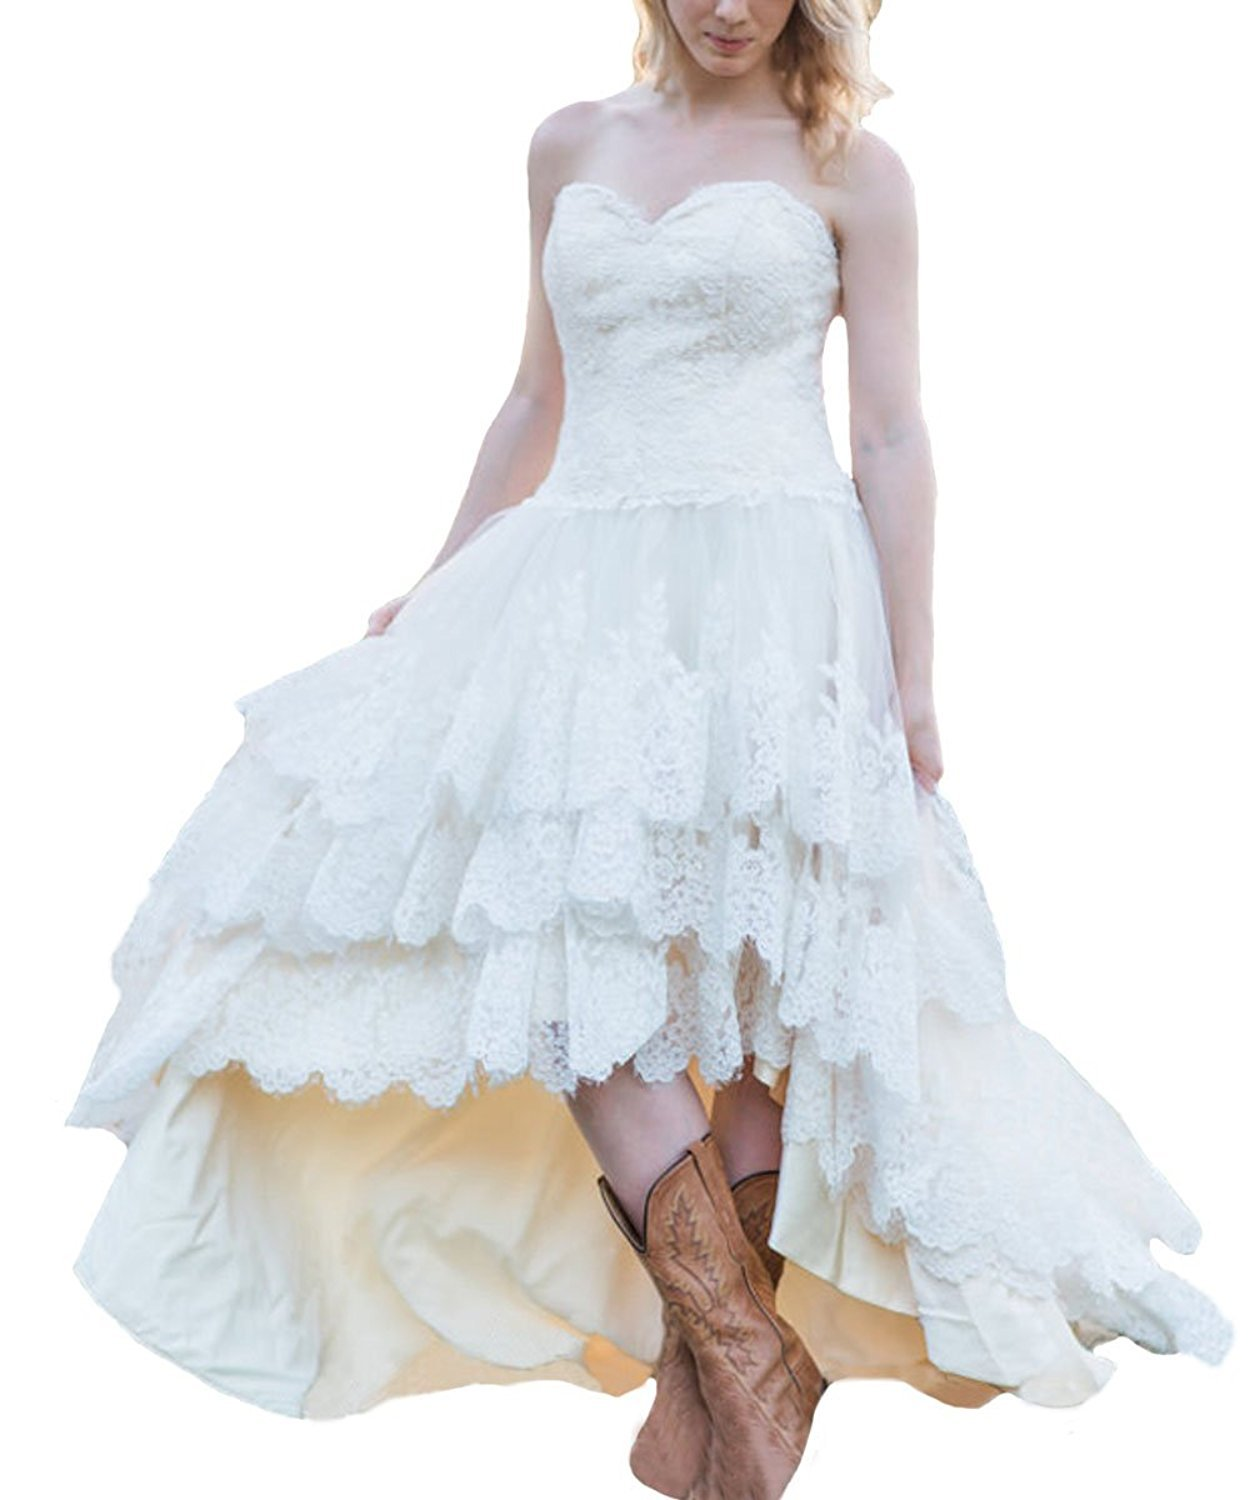 Wedding Gowns For Less: Tulle Wedding Dress High Low Lace Bridal Dresses Corset